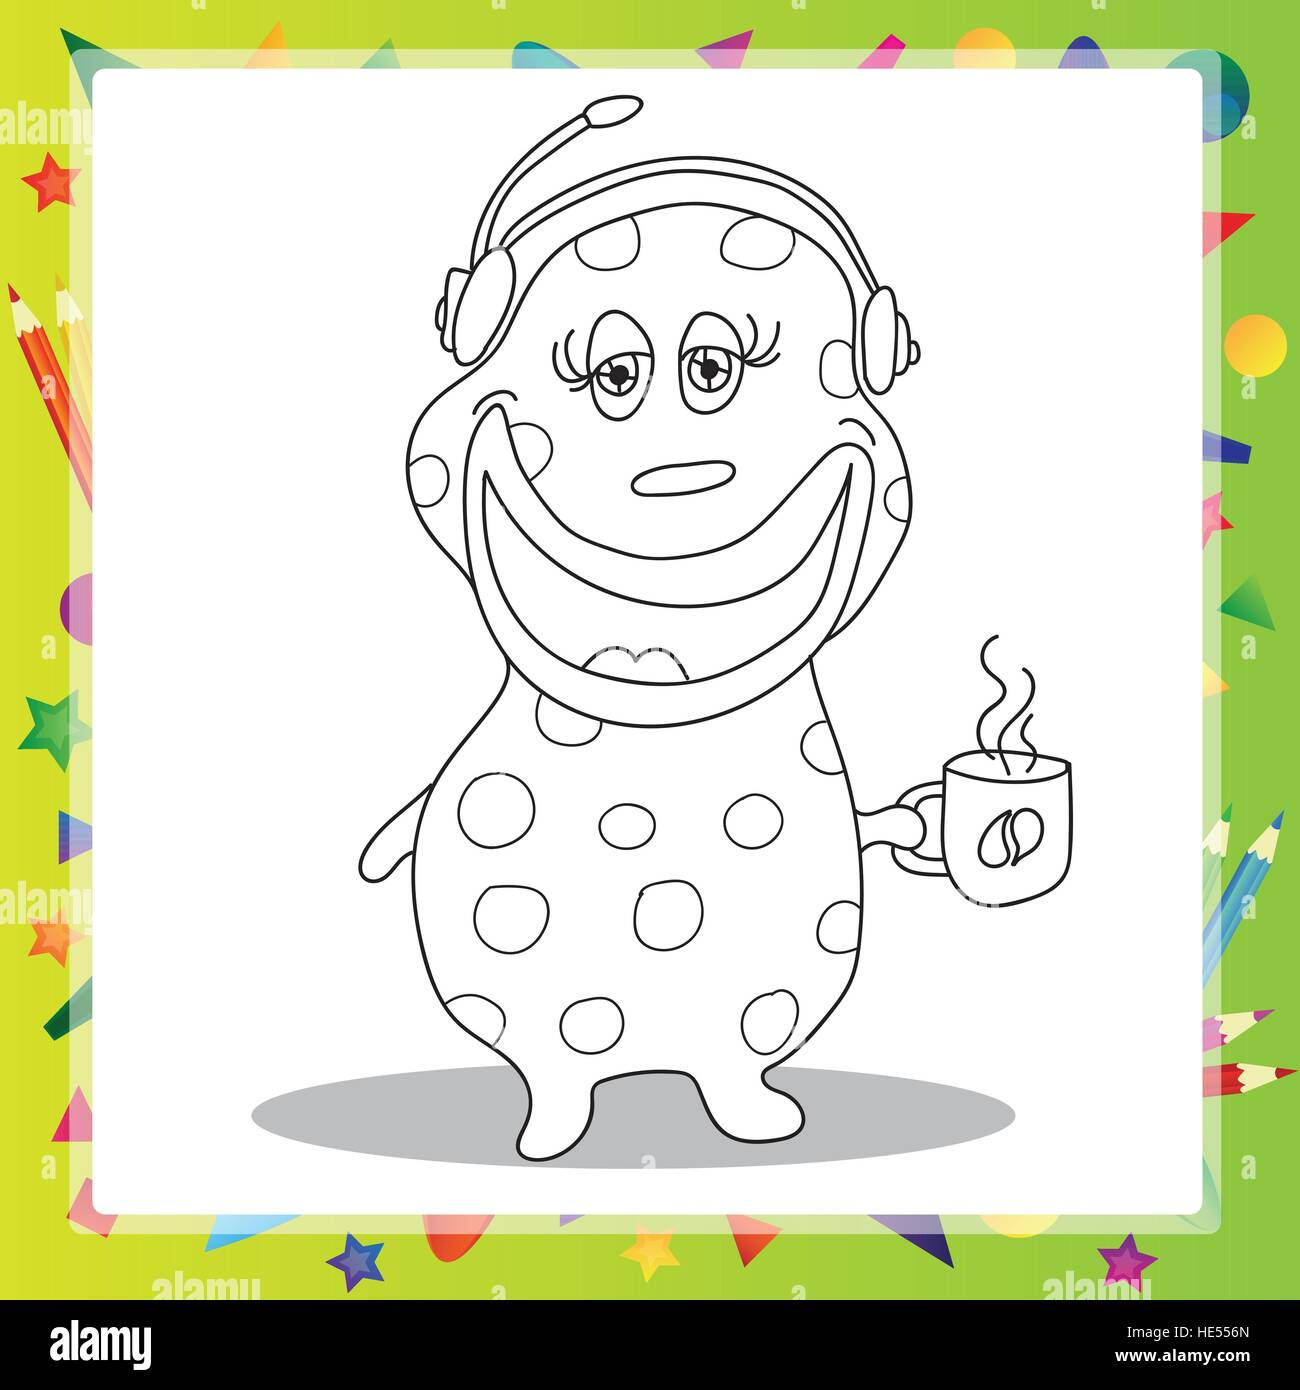 Fun Cartoon Character Phone Operator with a cup of hot coffee - coloring book - Stock Vector